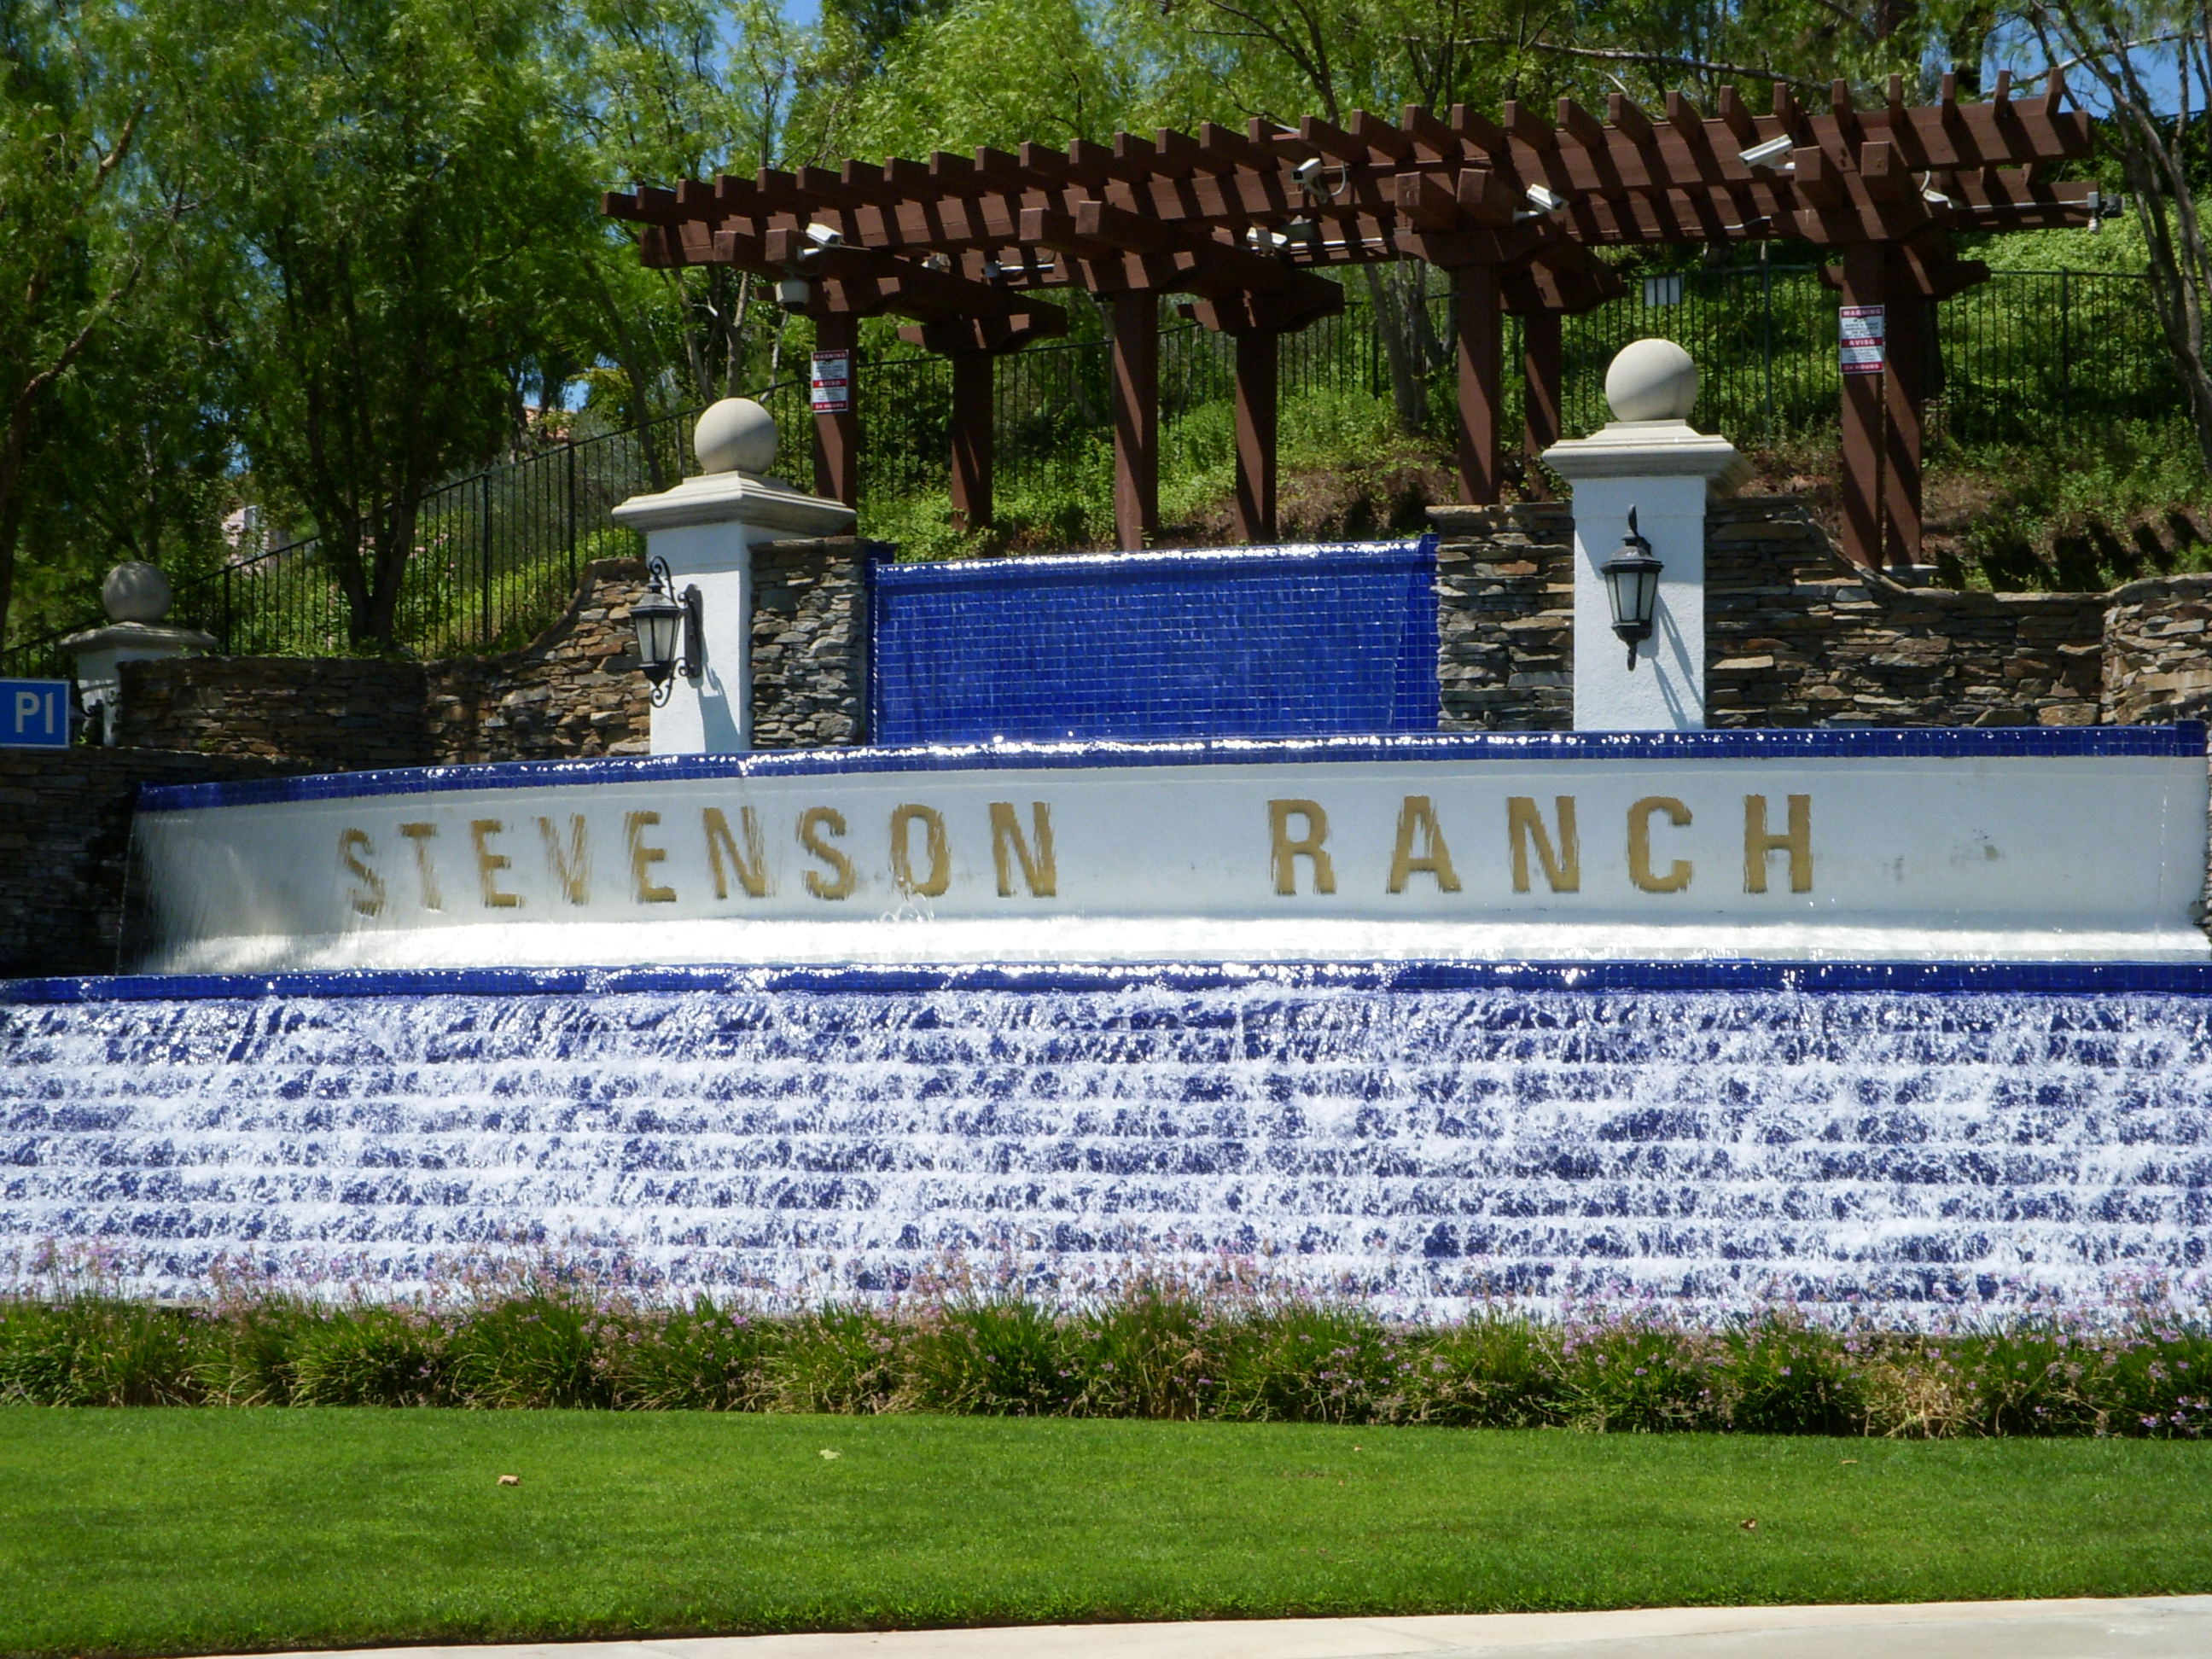 stevenson ranch Stevenson ranch news find breaking news, commentary, and archival information about stevenson ranch from the latimes.